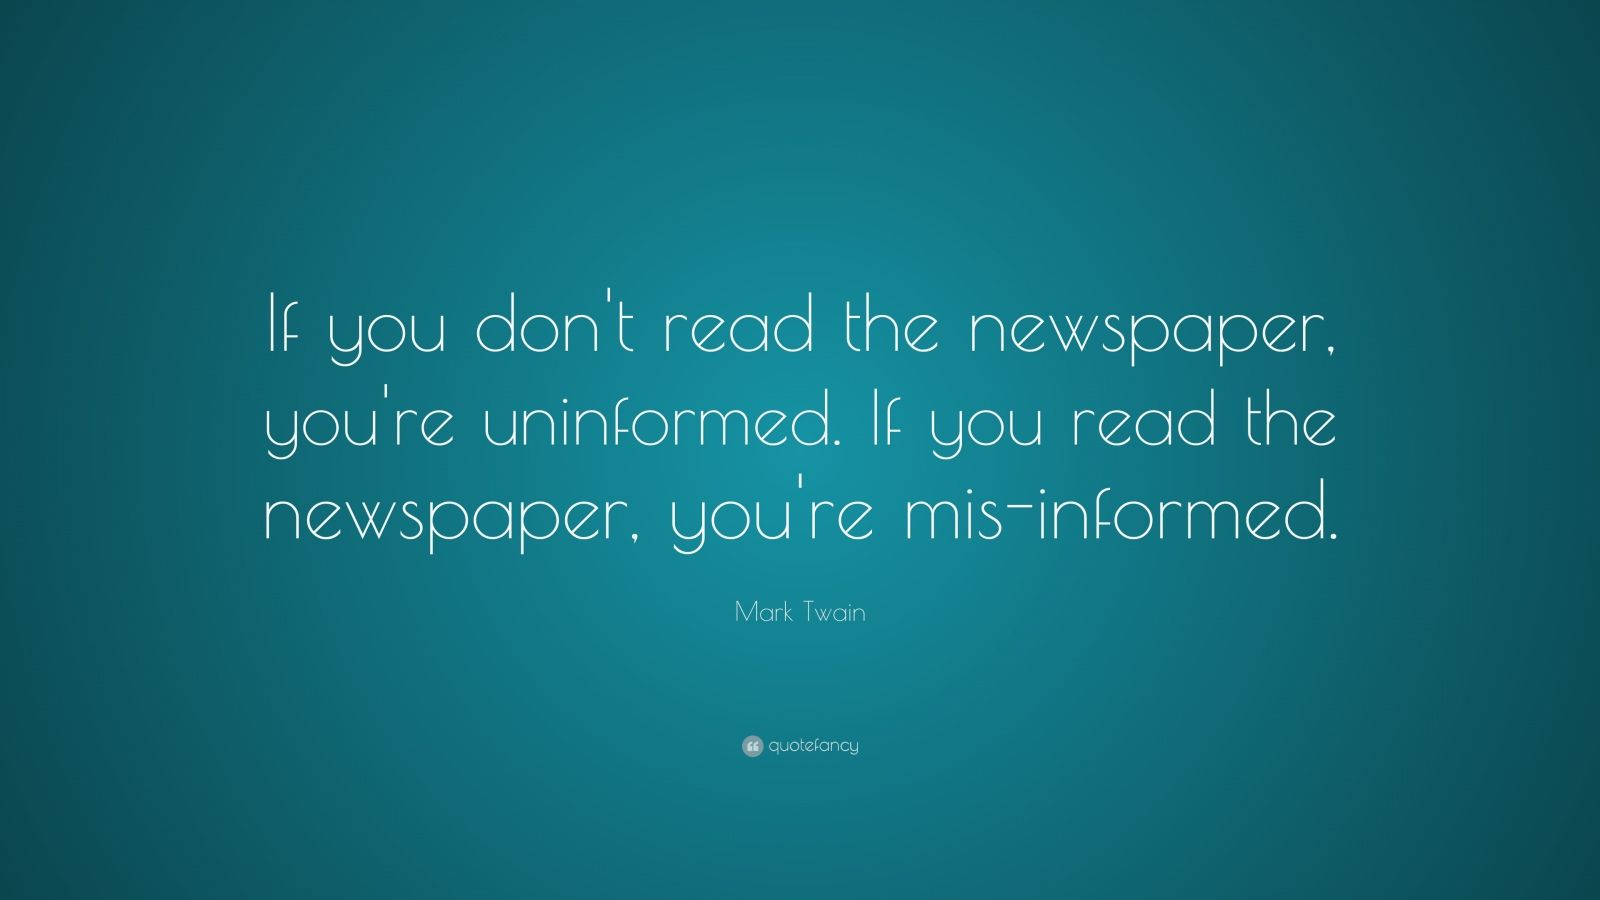 """Mark Twain Quote: """"If you don't read the newspaper, you're uninformed. If you read the newspaper, you're mis-informed."""""""